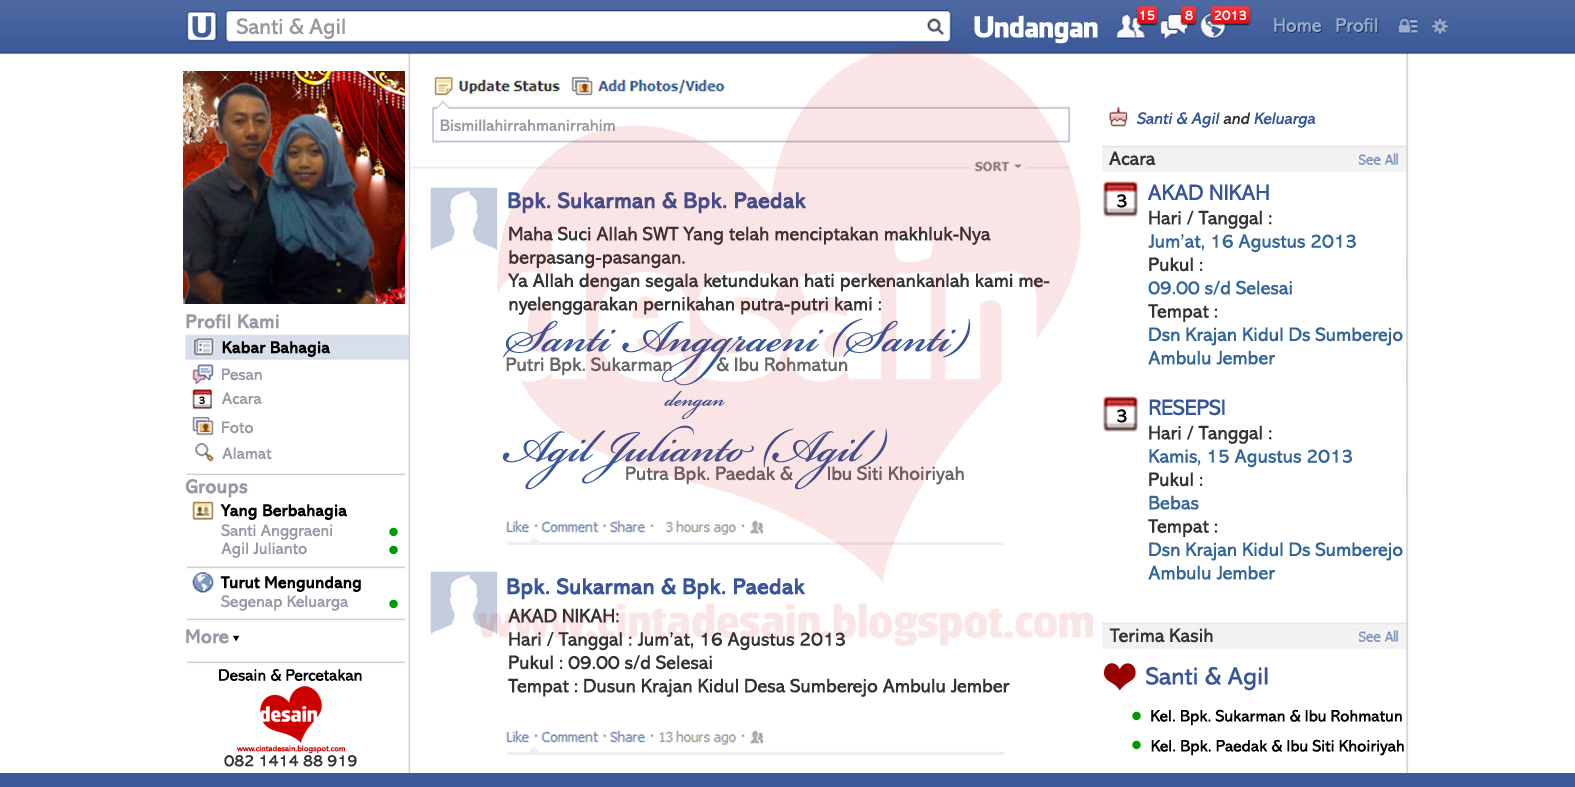 Download+Gratis+Undangan+Facebook+by+Cinta+Desain-2.jpg